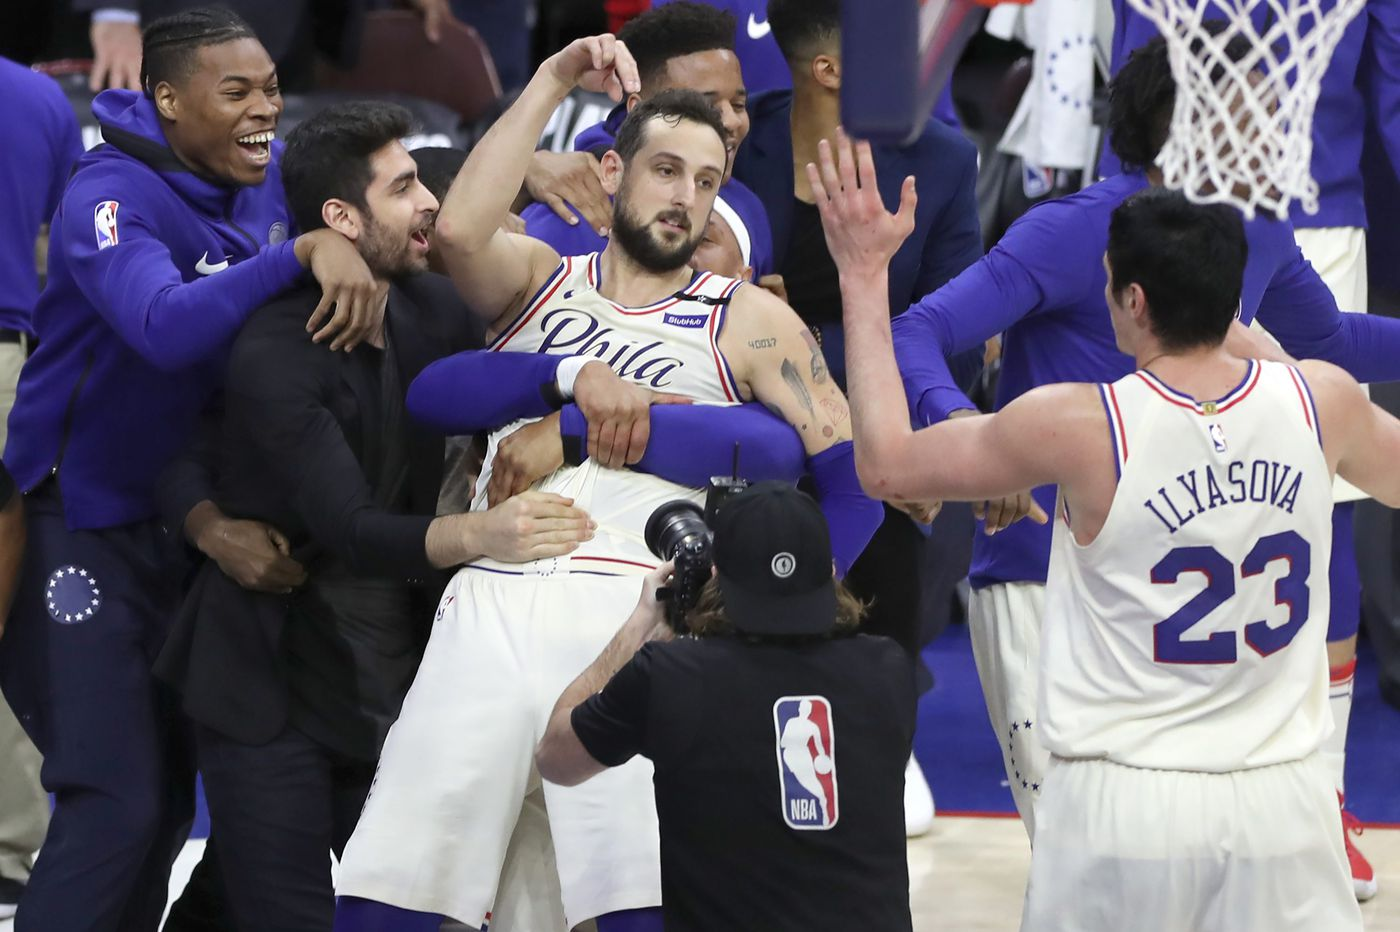 Marco Belinelli signs with Spurs, leaves Sixers in NBA free agency